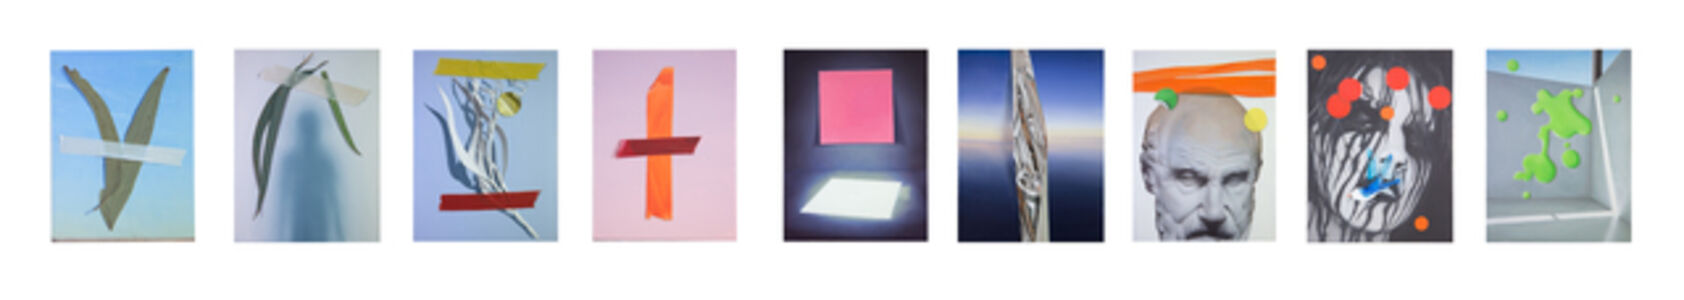 Juan Ford, 'If the Light Takes Us (9-Part Work)', 2018-2019